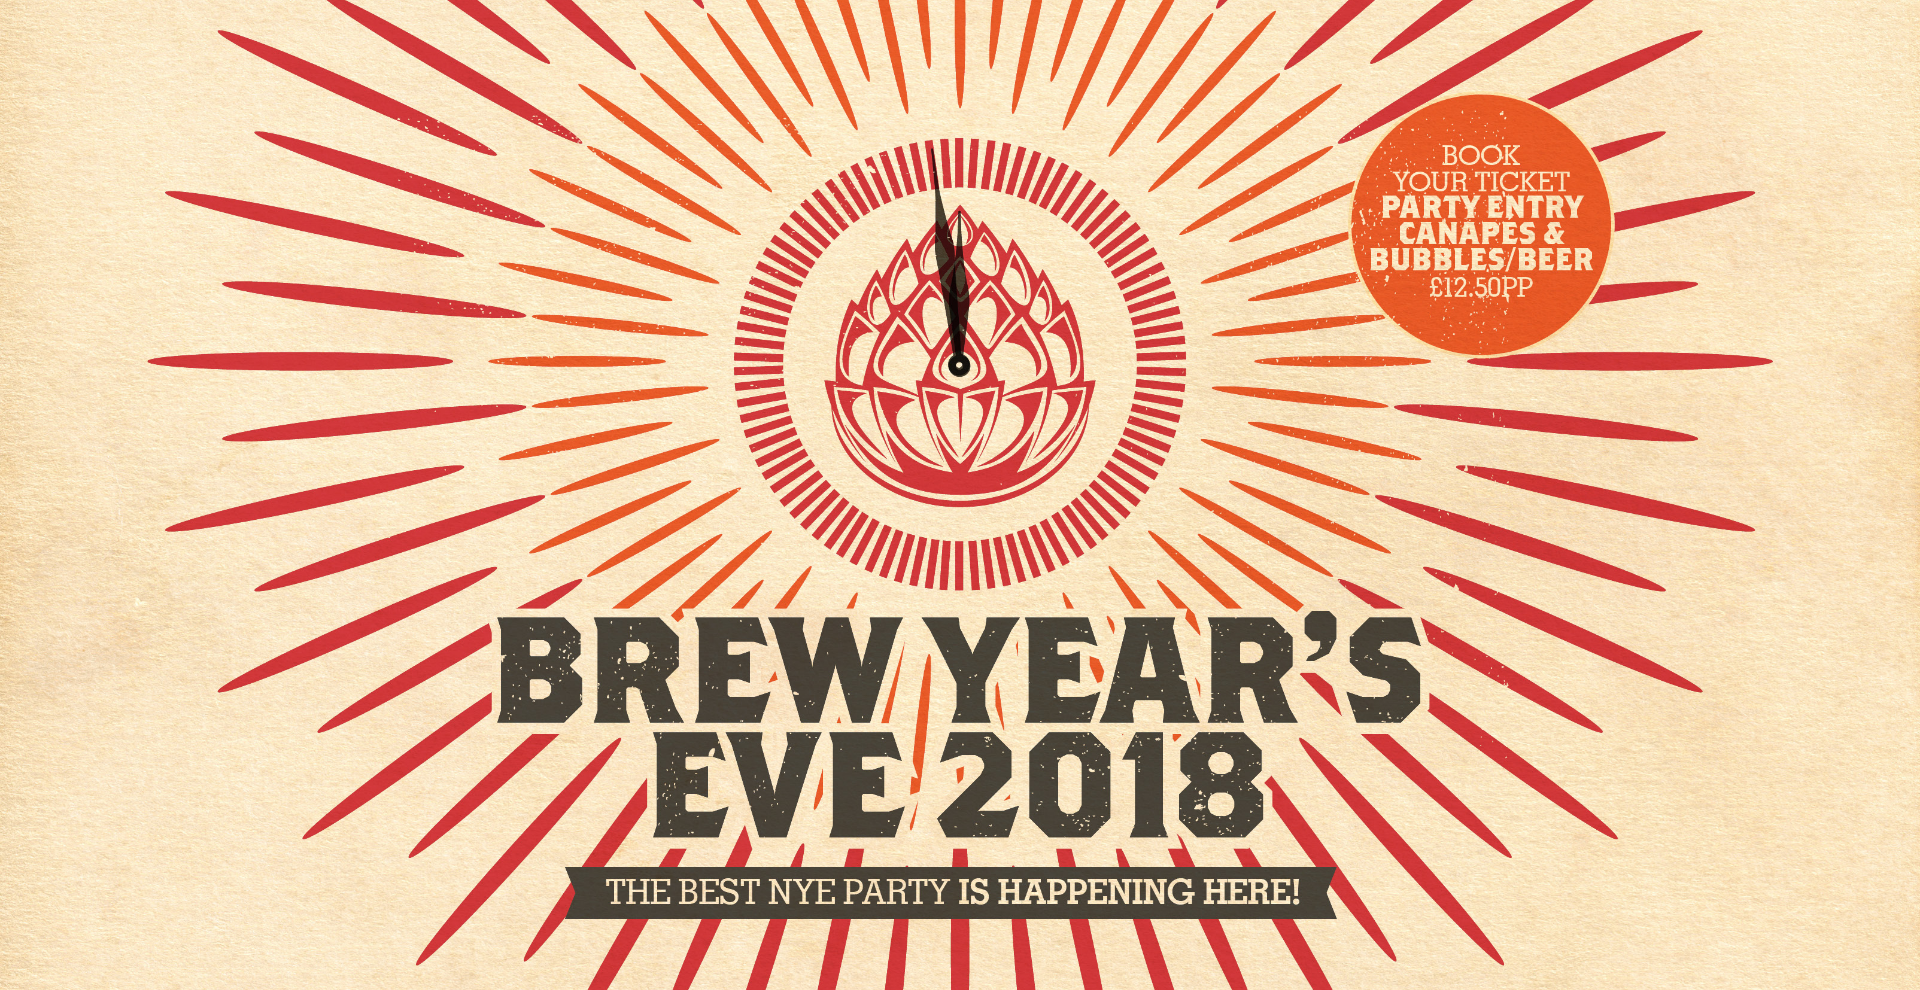 Brew Year's Eve - Sutton Coldfield